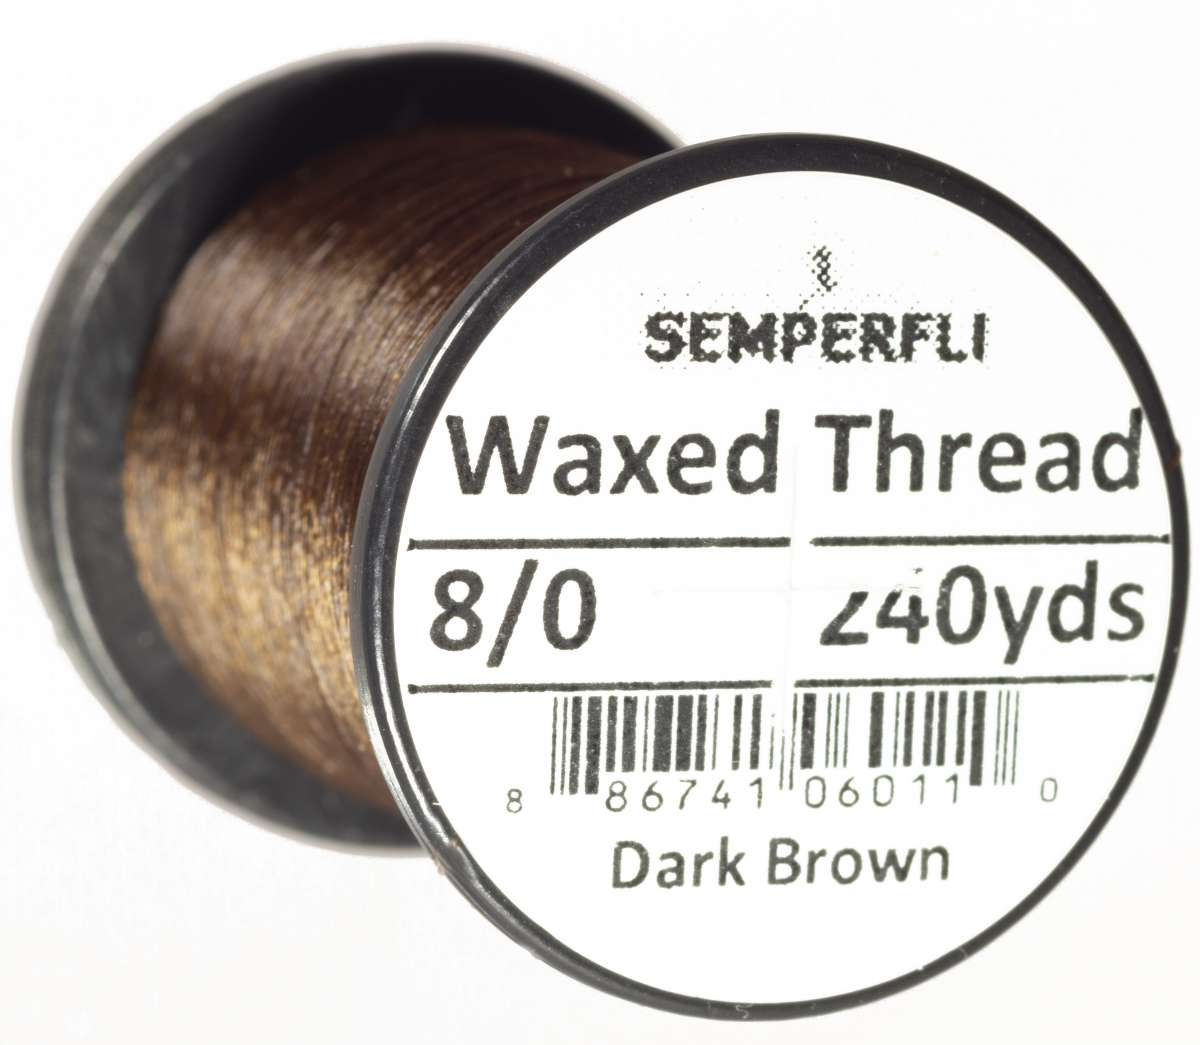 8/0 Classic Waxed Thread Dark Brown Sem-0400-1306